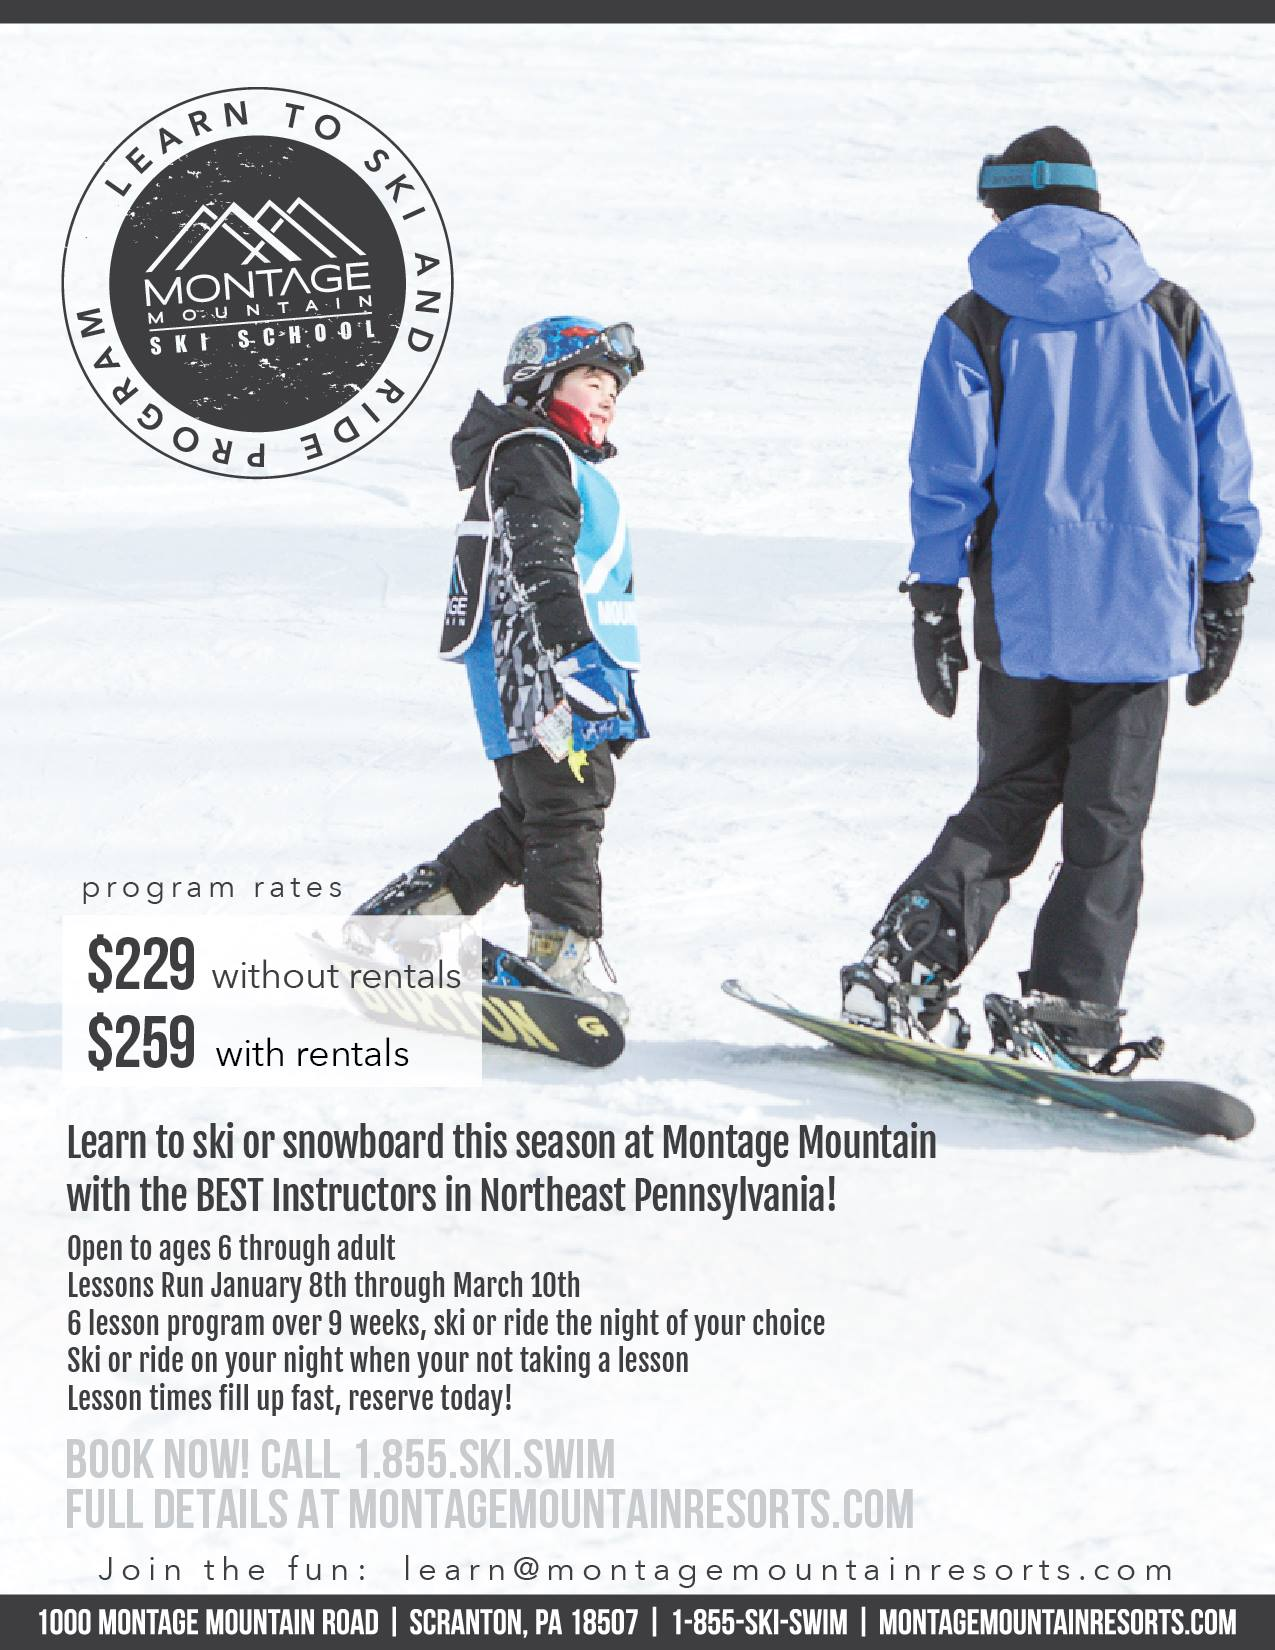 SKI SNOWBOARD LESSONS LEARN TO SKI